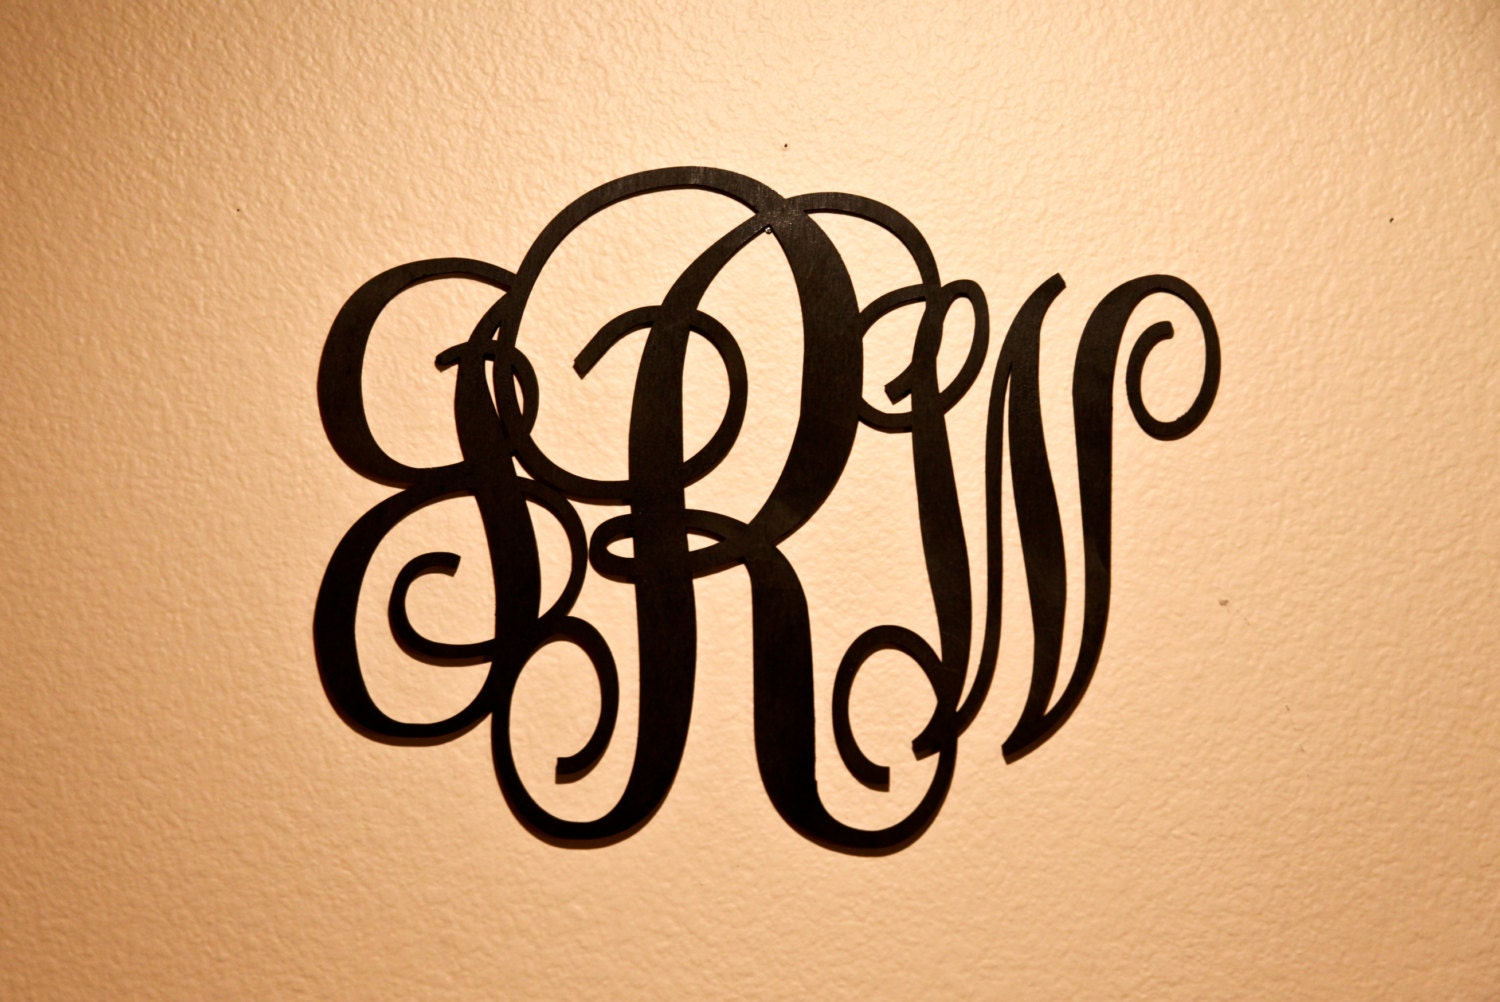 Personalized Wood Wall Decor : Personalized monogram wood wall decor weddings by cabanyco